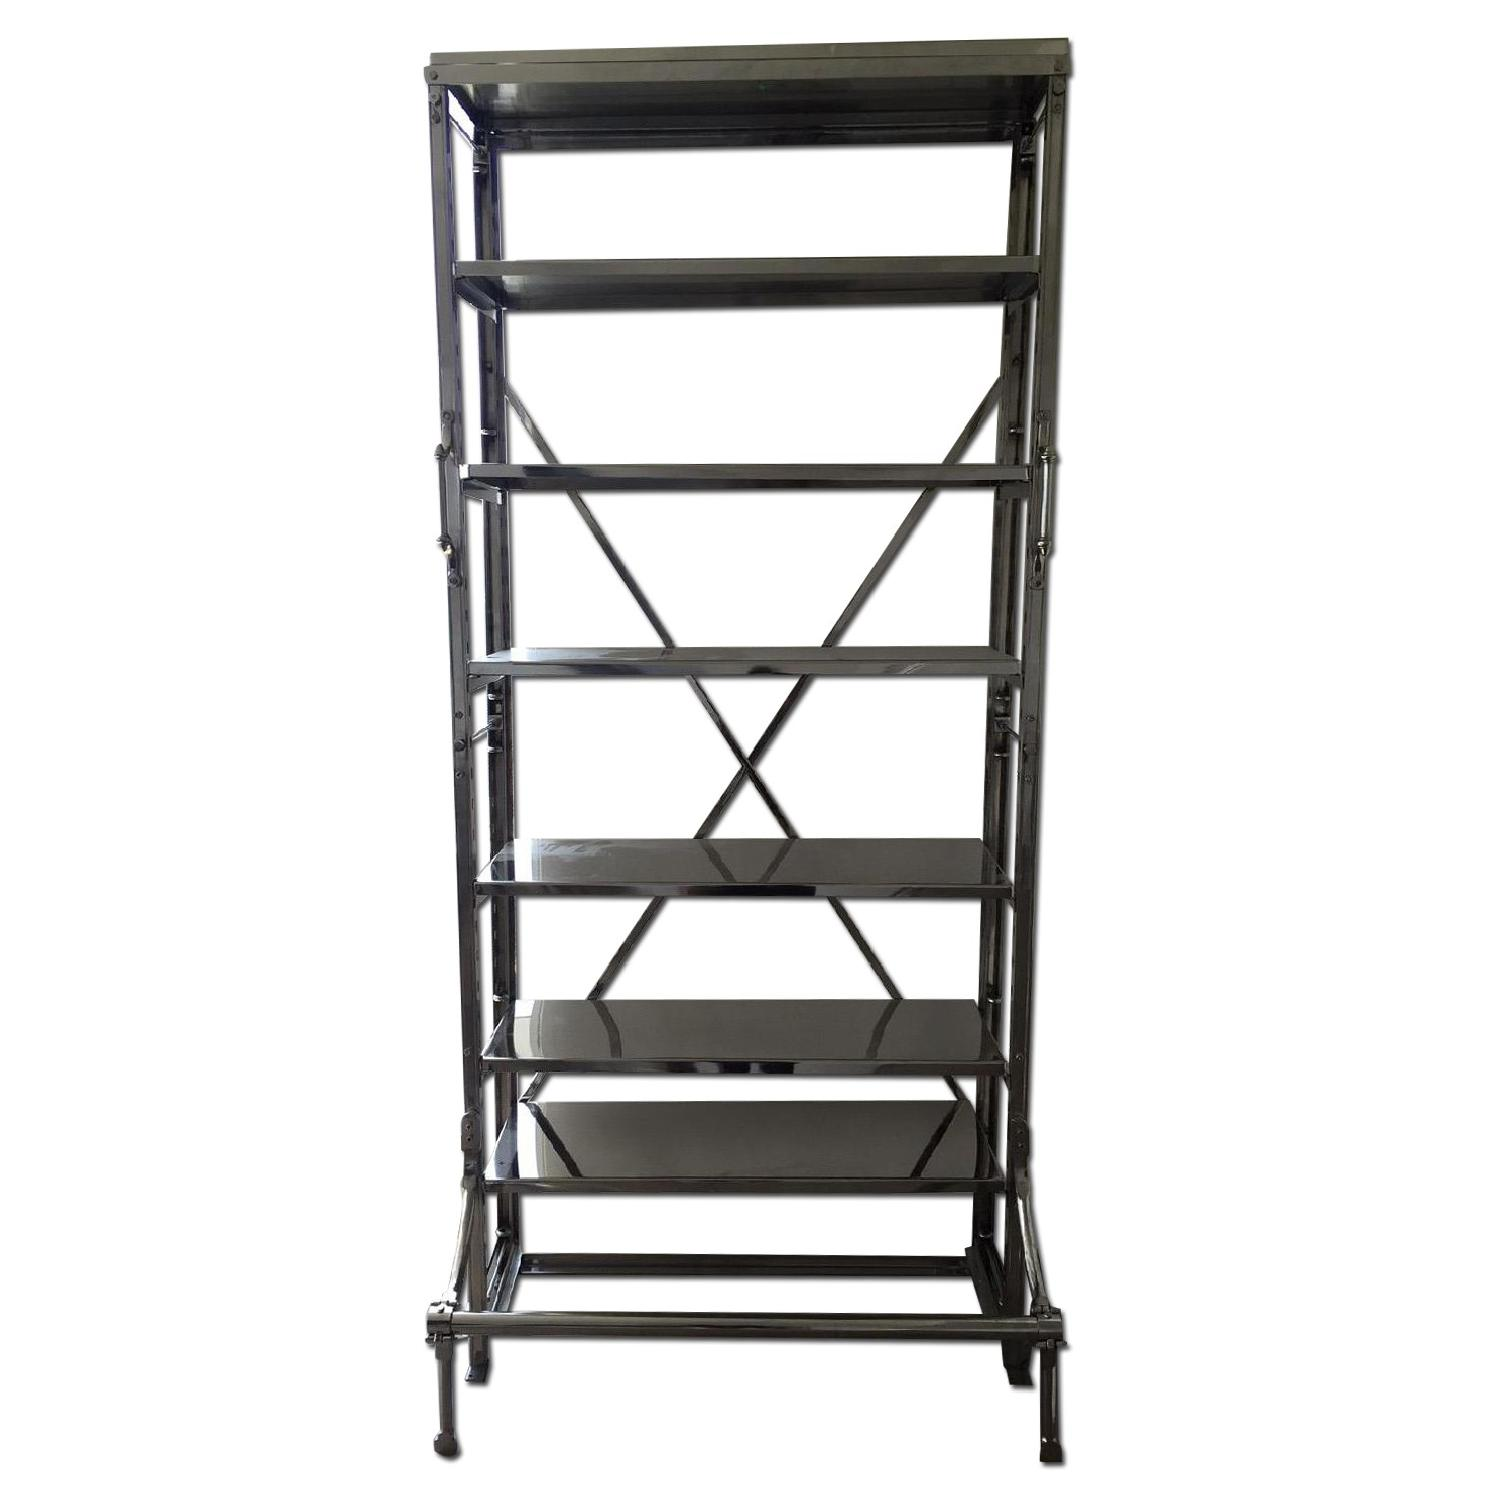 Restoration Hardware French Library Single Shelving in Polished Stainless Steel - image-0